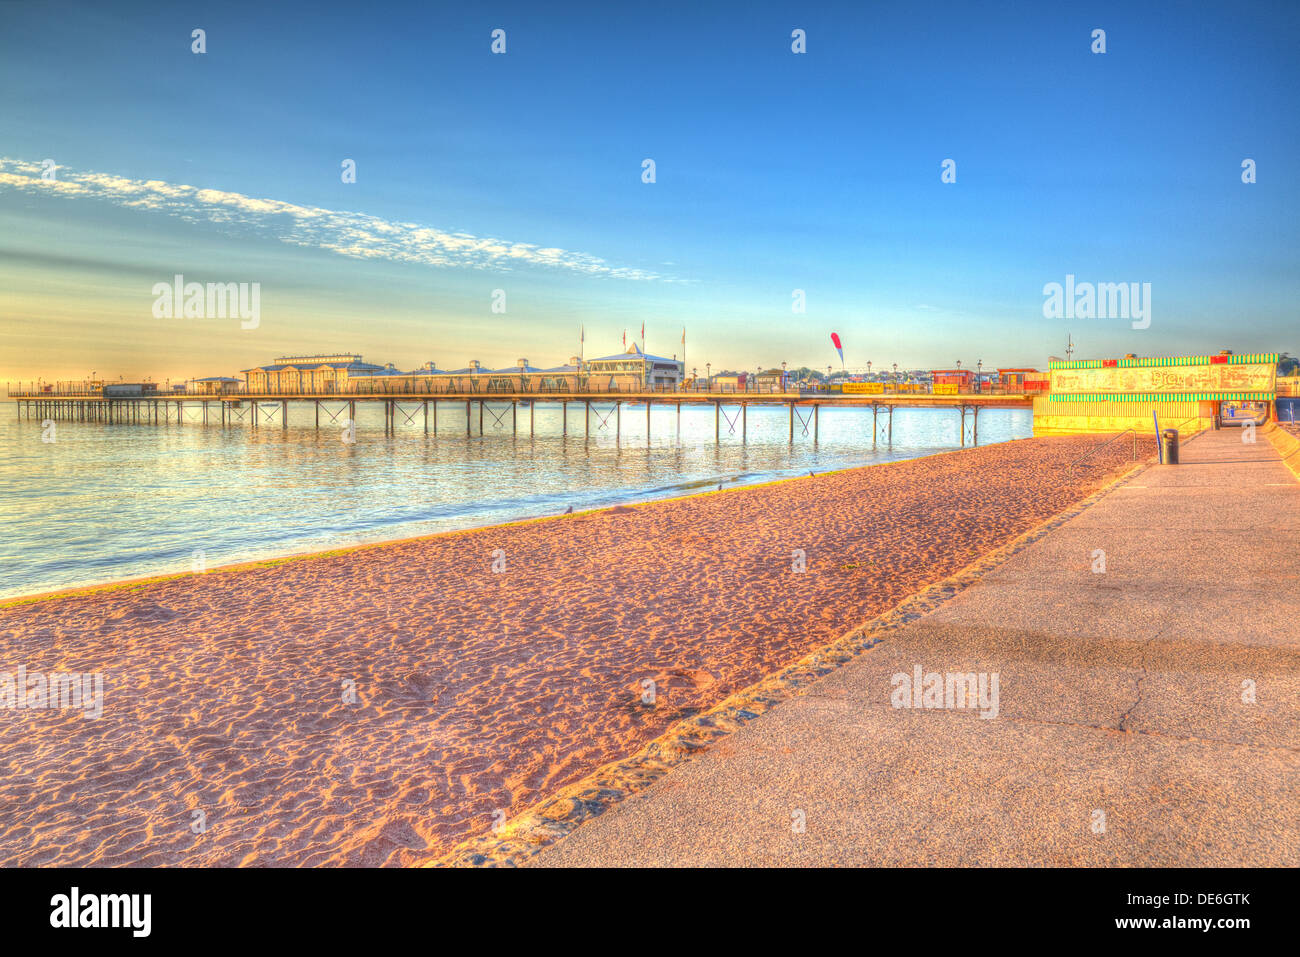 Paignton pier and sandy beach Torbay Devon England in HDR with blue sky, near tourist destinations of Torquay and Brixham - Stock Image